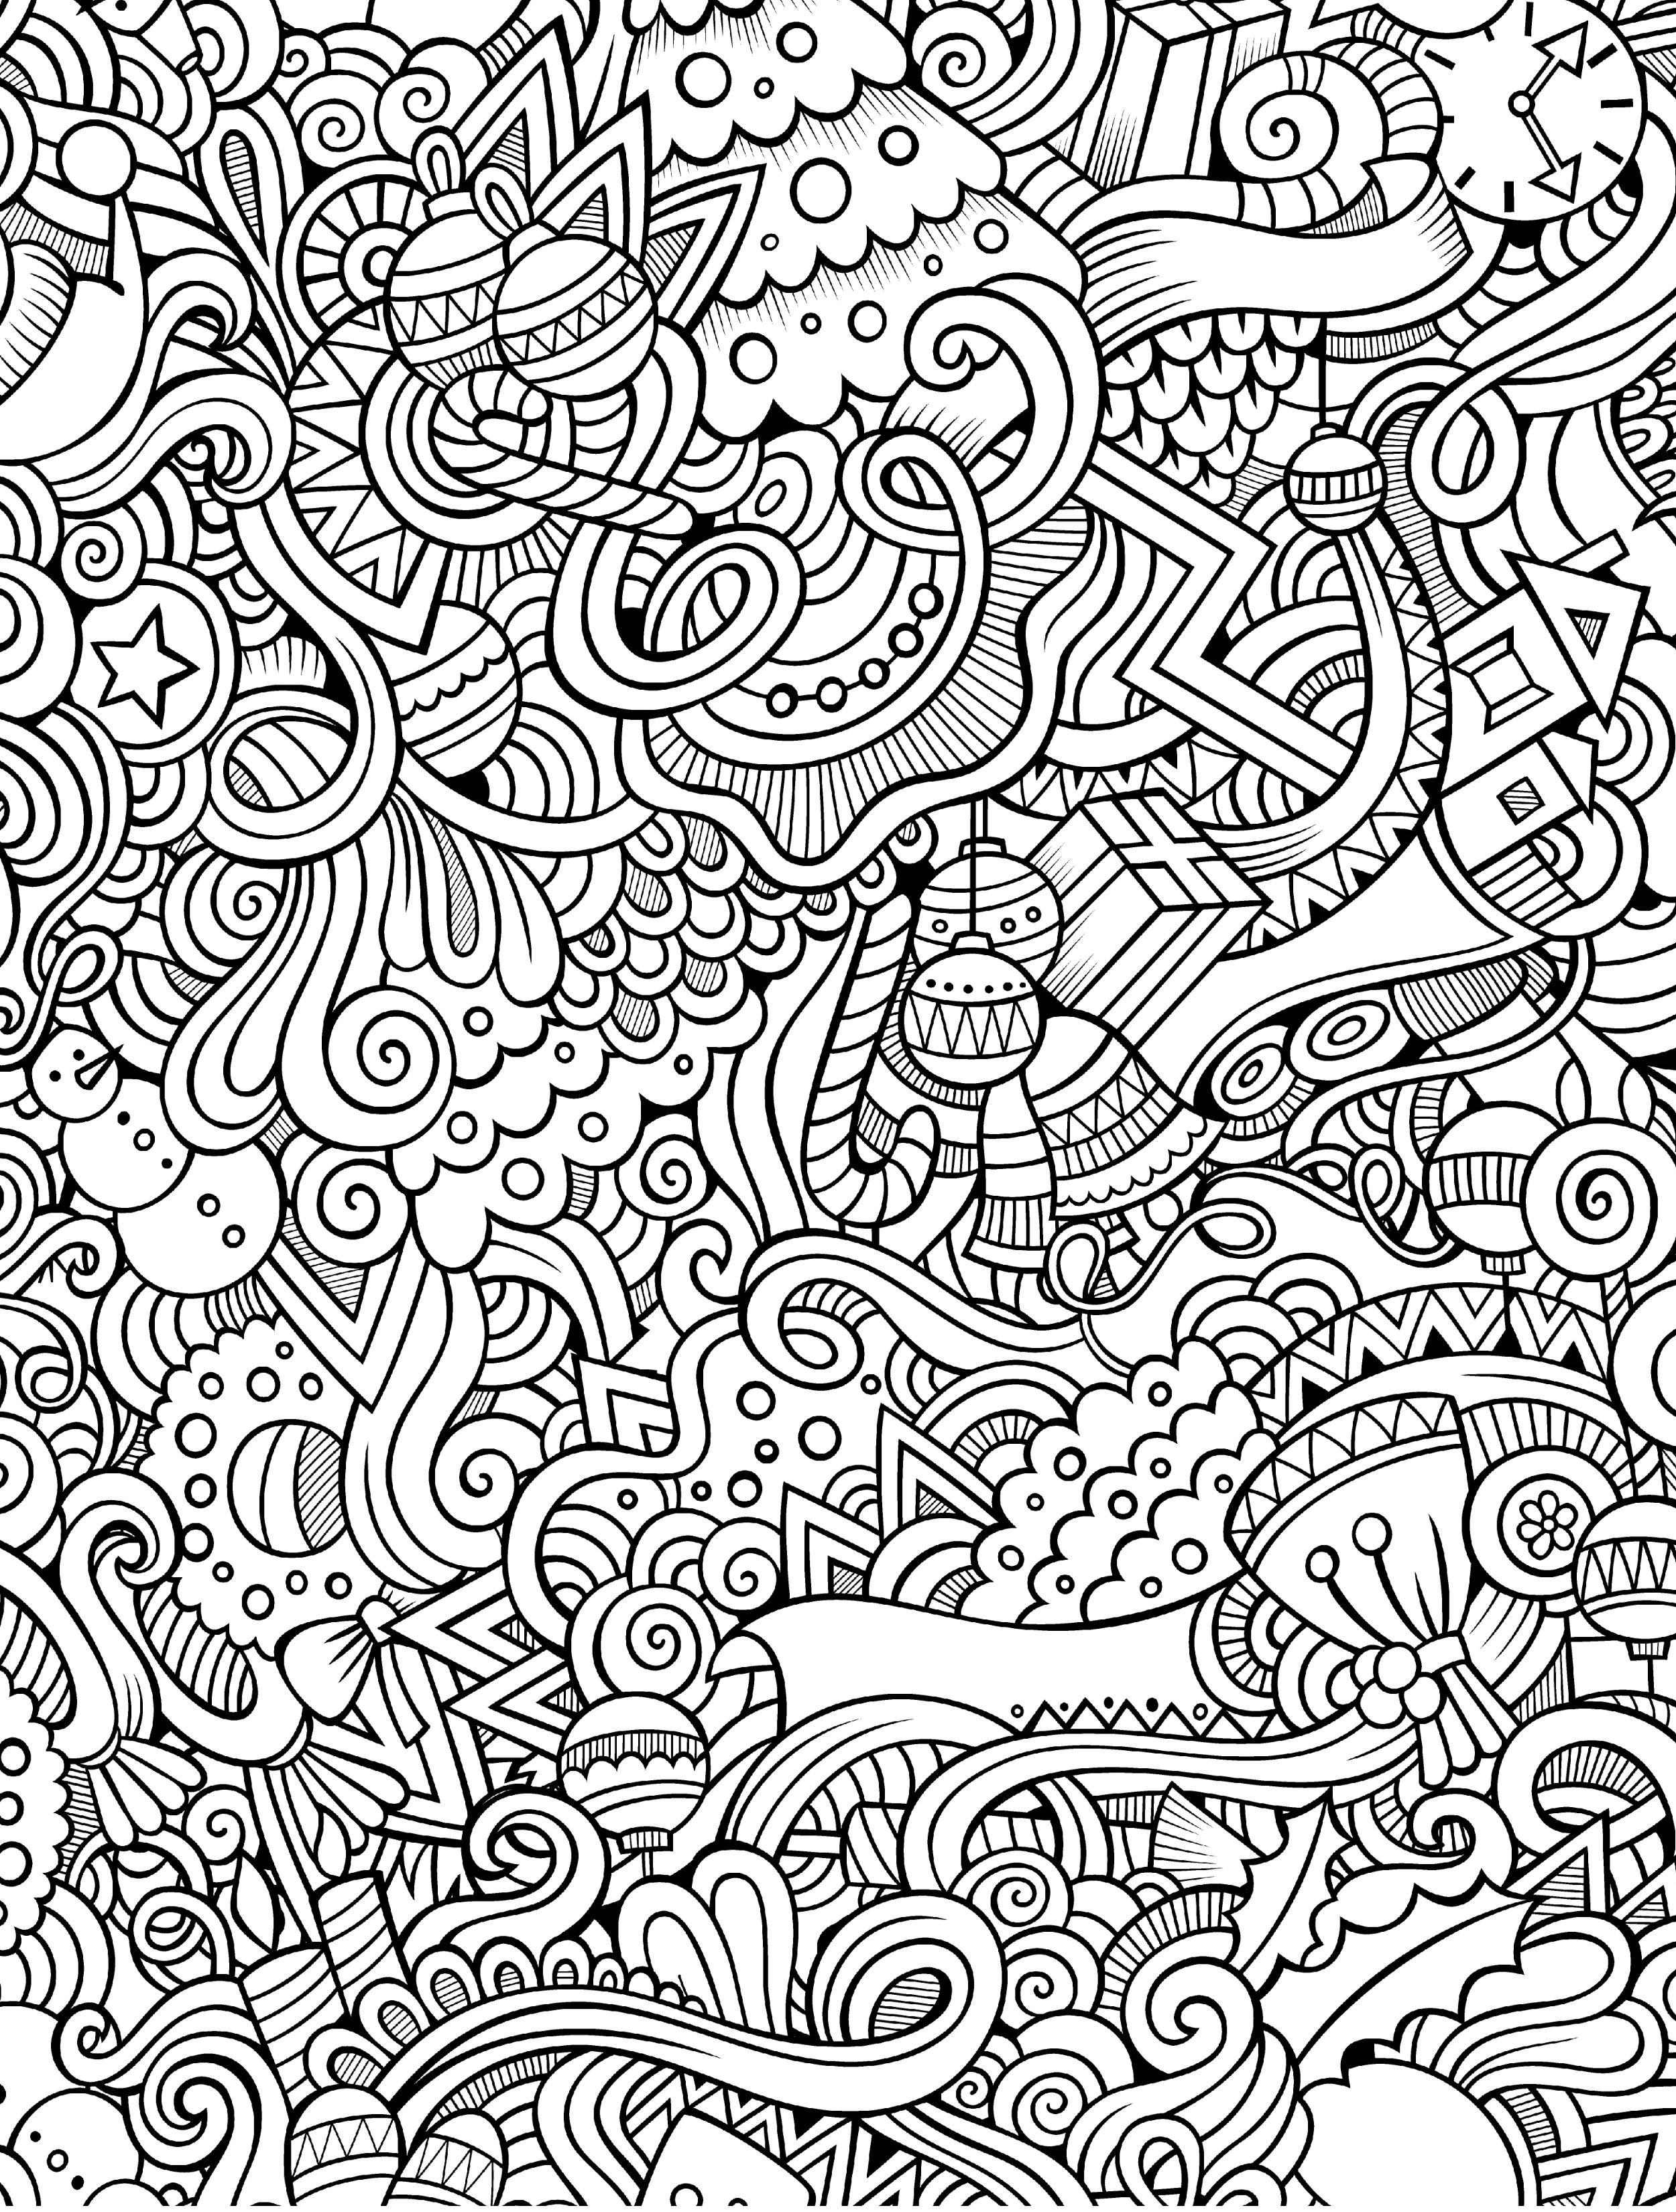 Free Christmas Coloring Pages To Print For Adults At Getdrawings